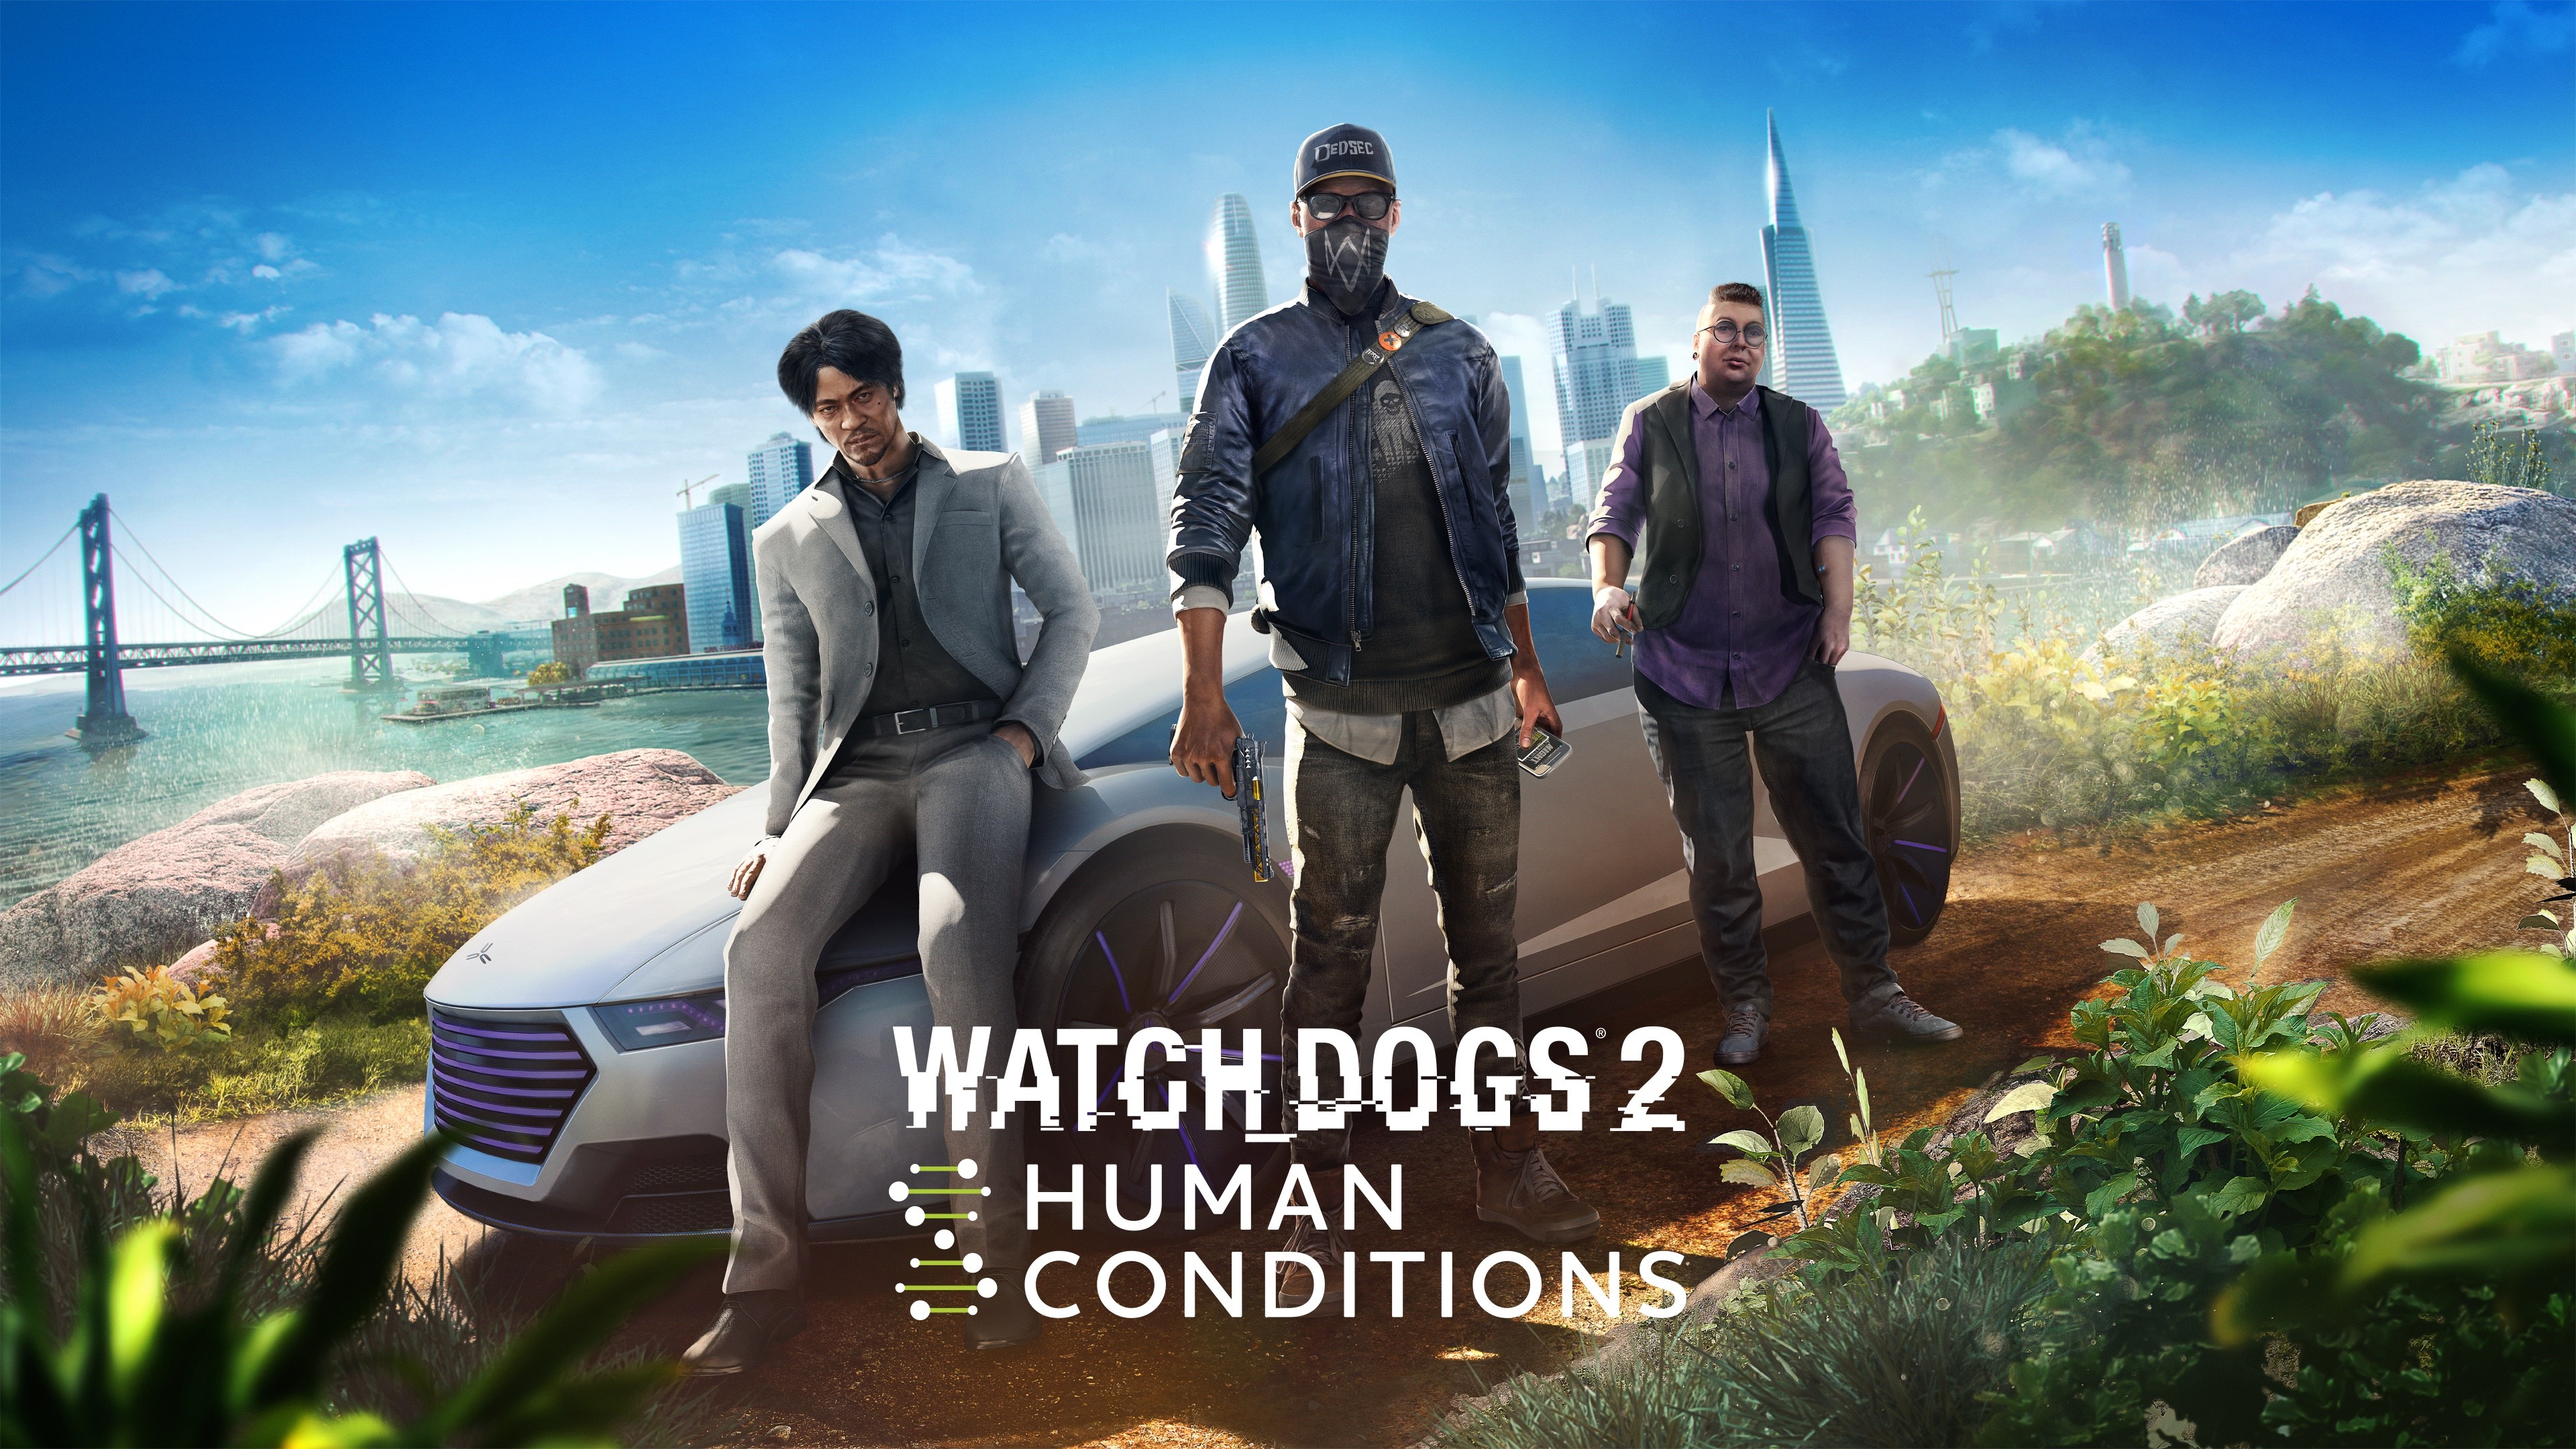 Watch Dogs 2 Human Conditions Hd Games 4k Wallpapers Images